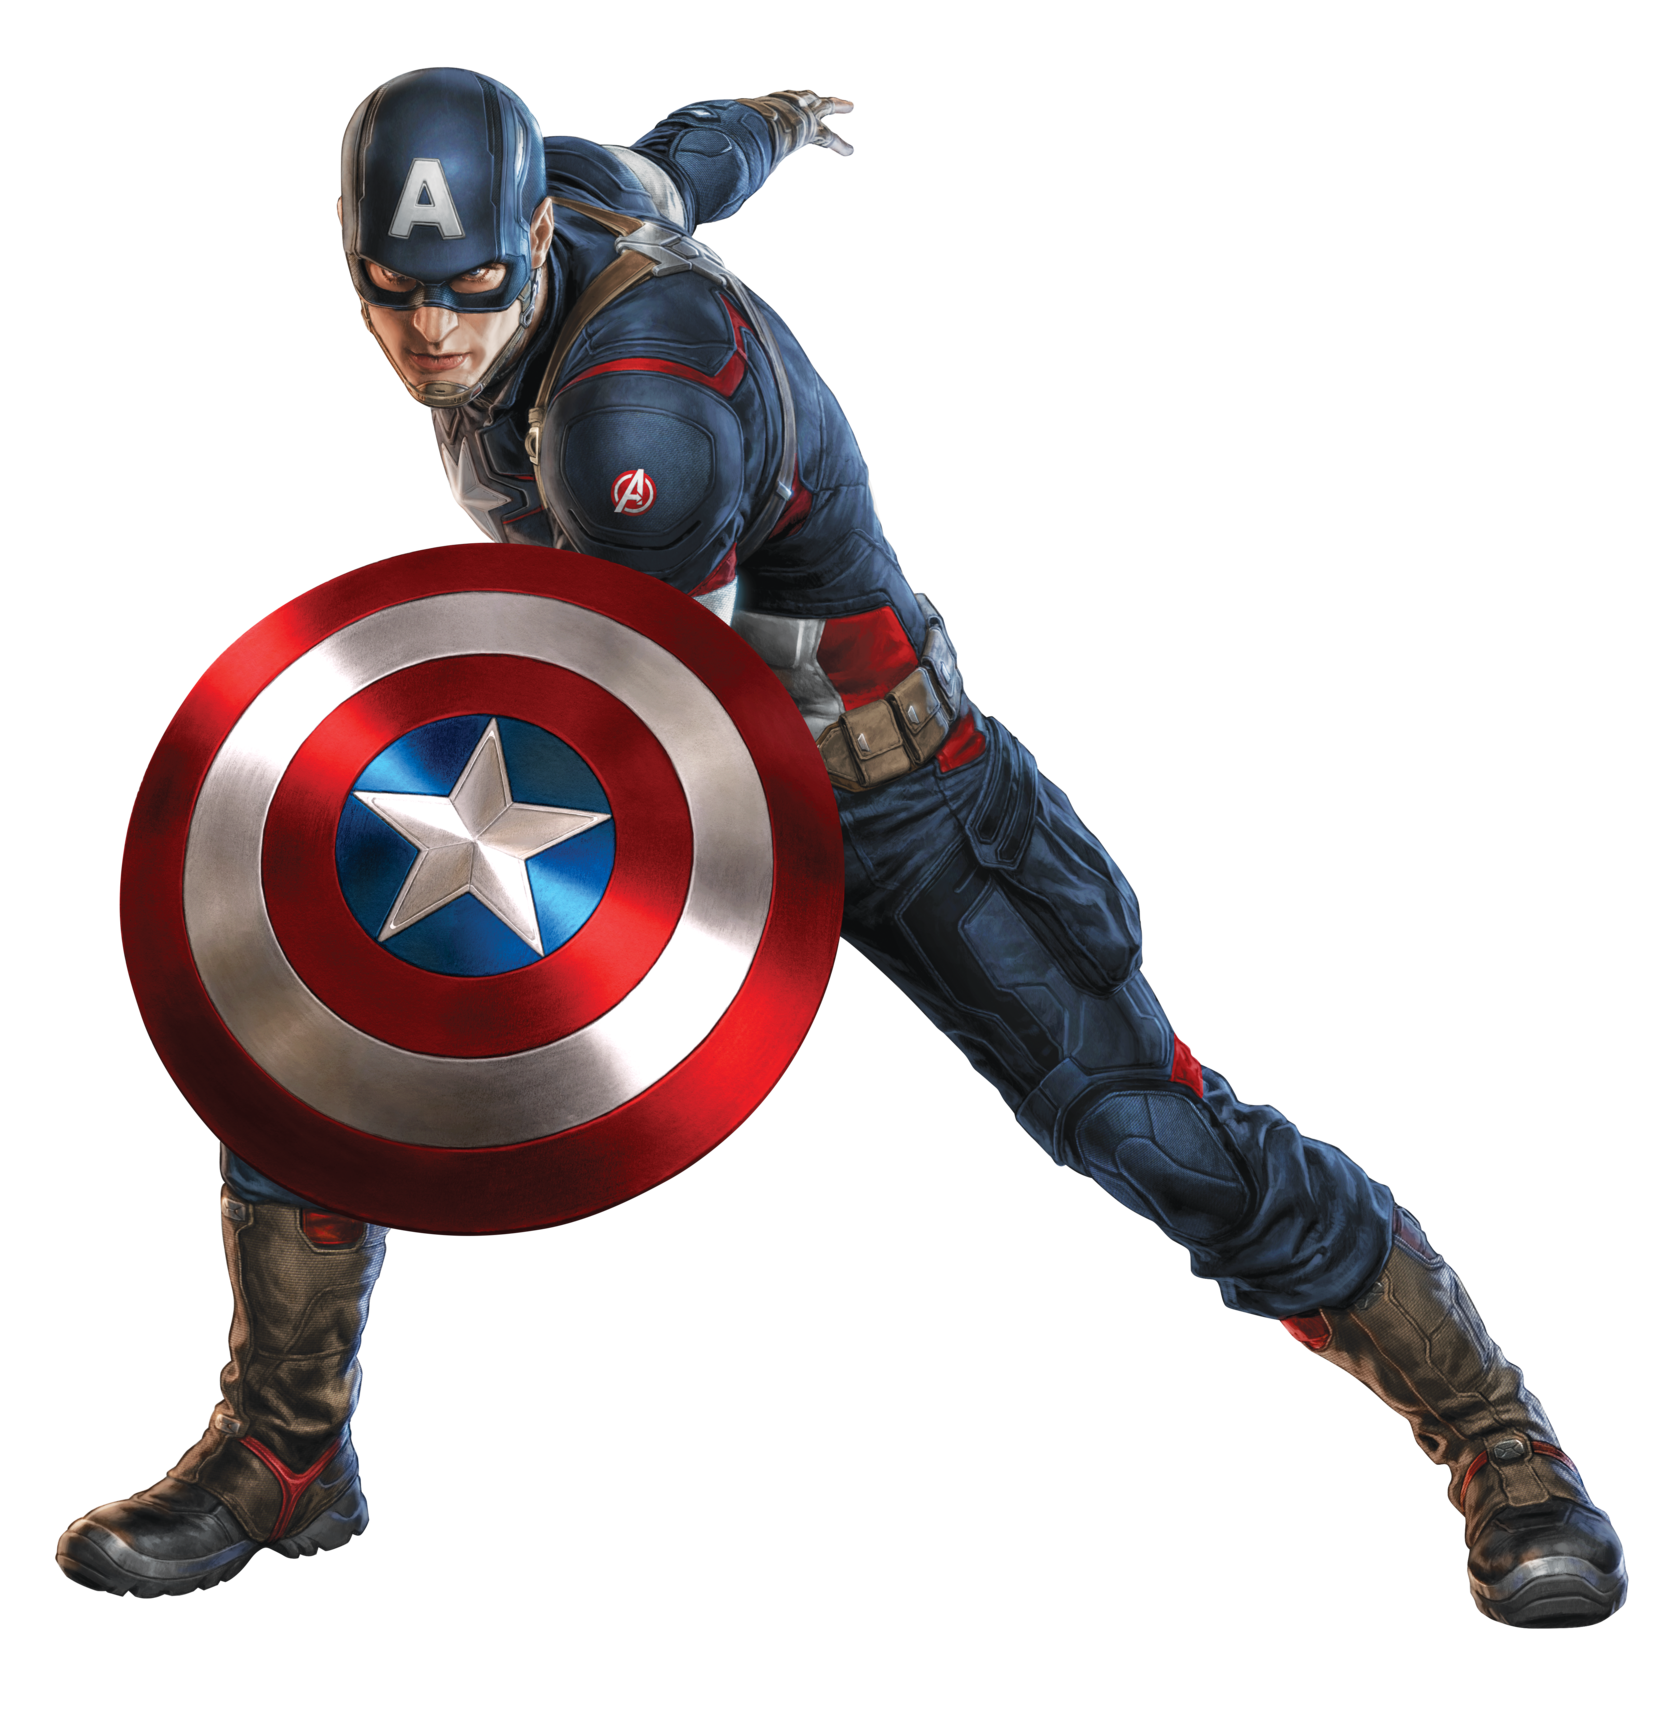 Captain America Fictional Superhero